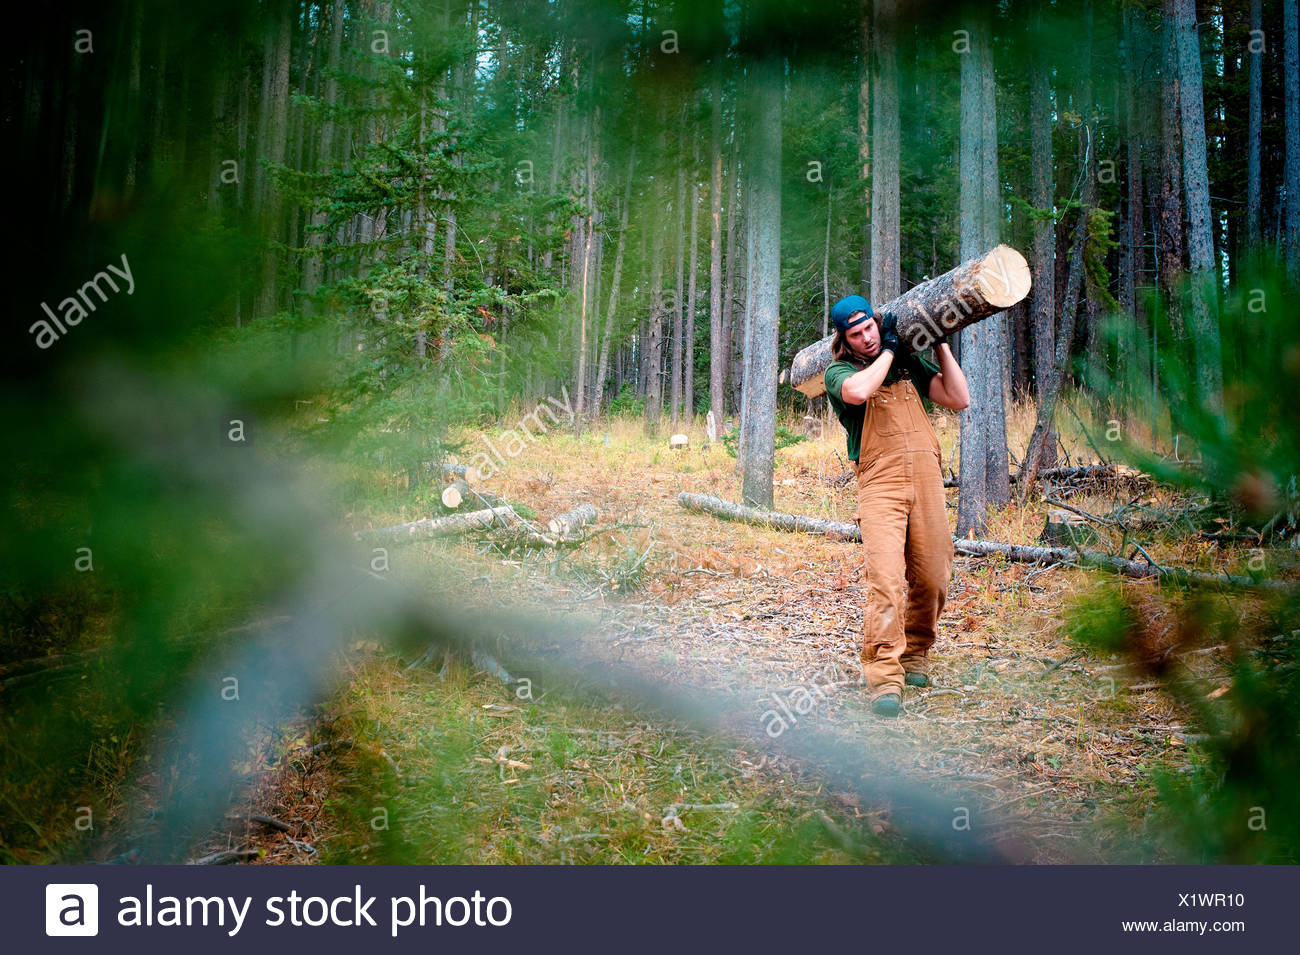 A man carries a large log in the woods. - Stock Image